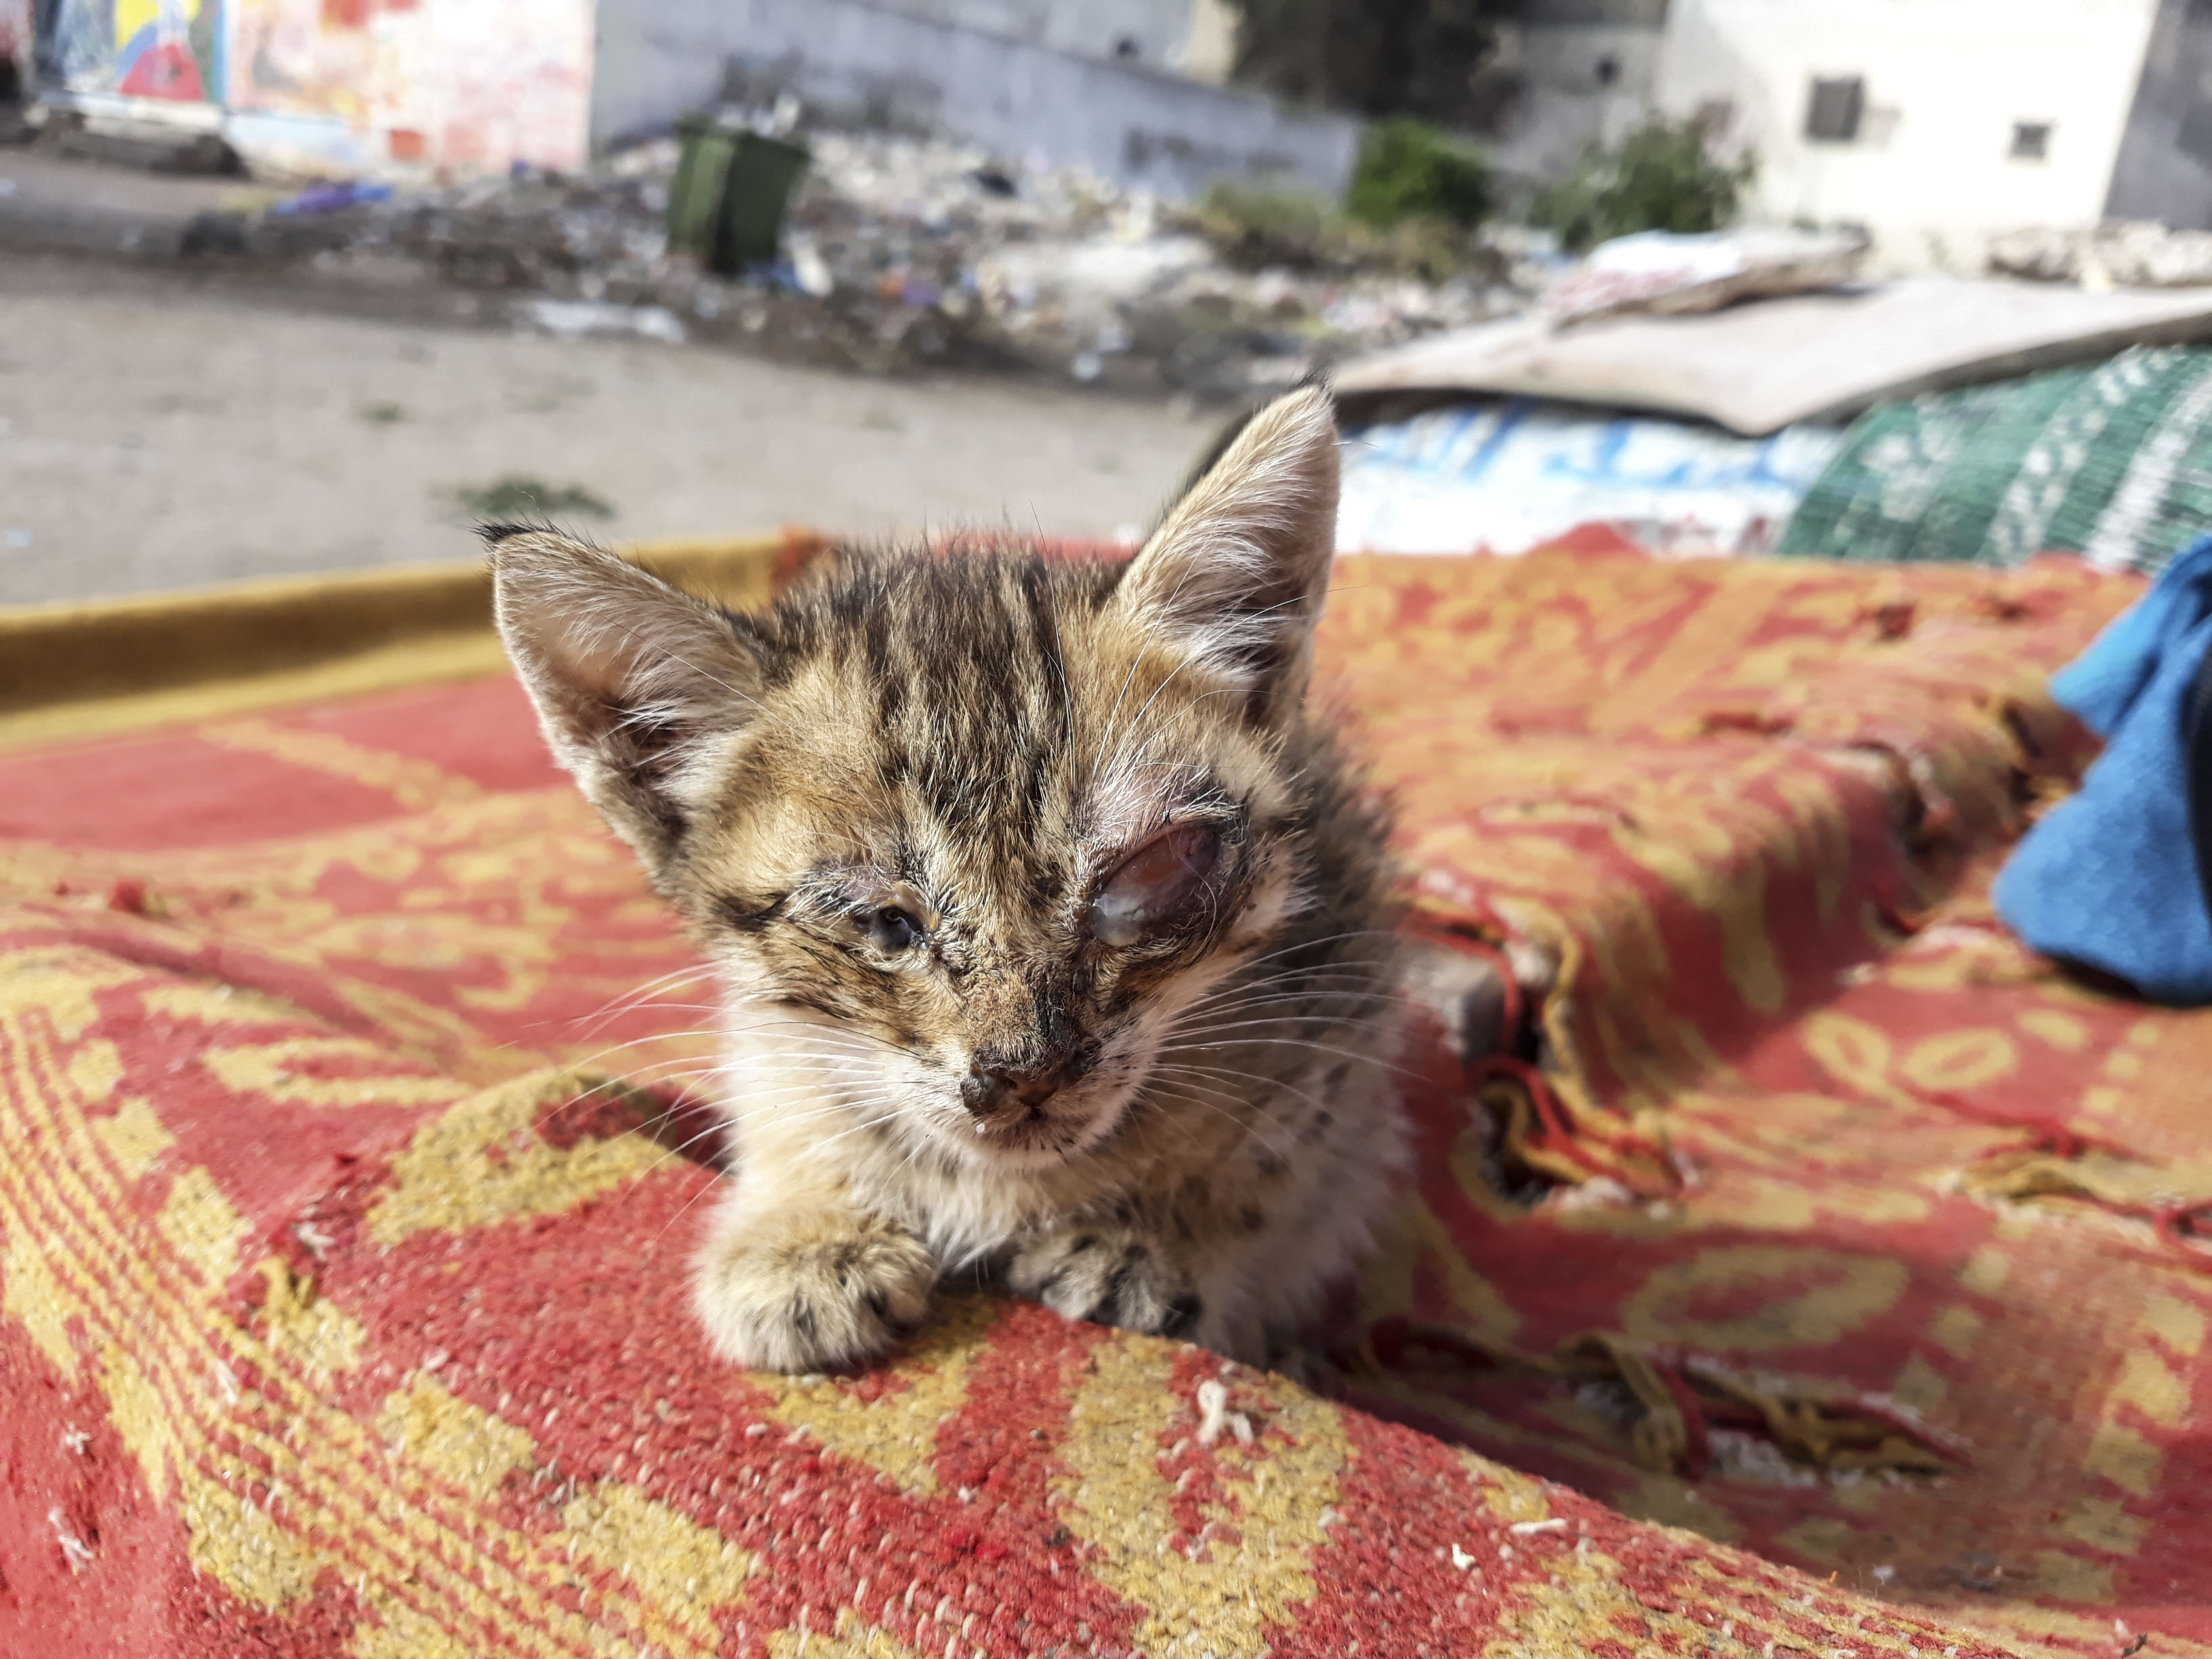 Kittens abandoned on a rubbish dump and left to die